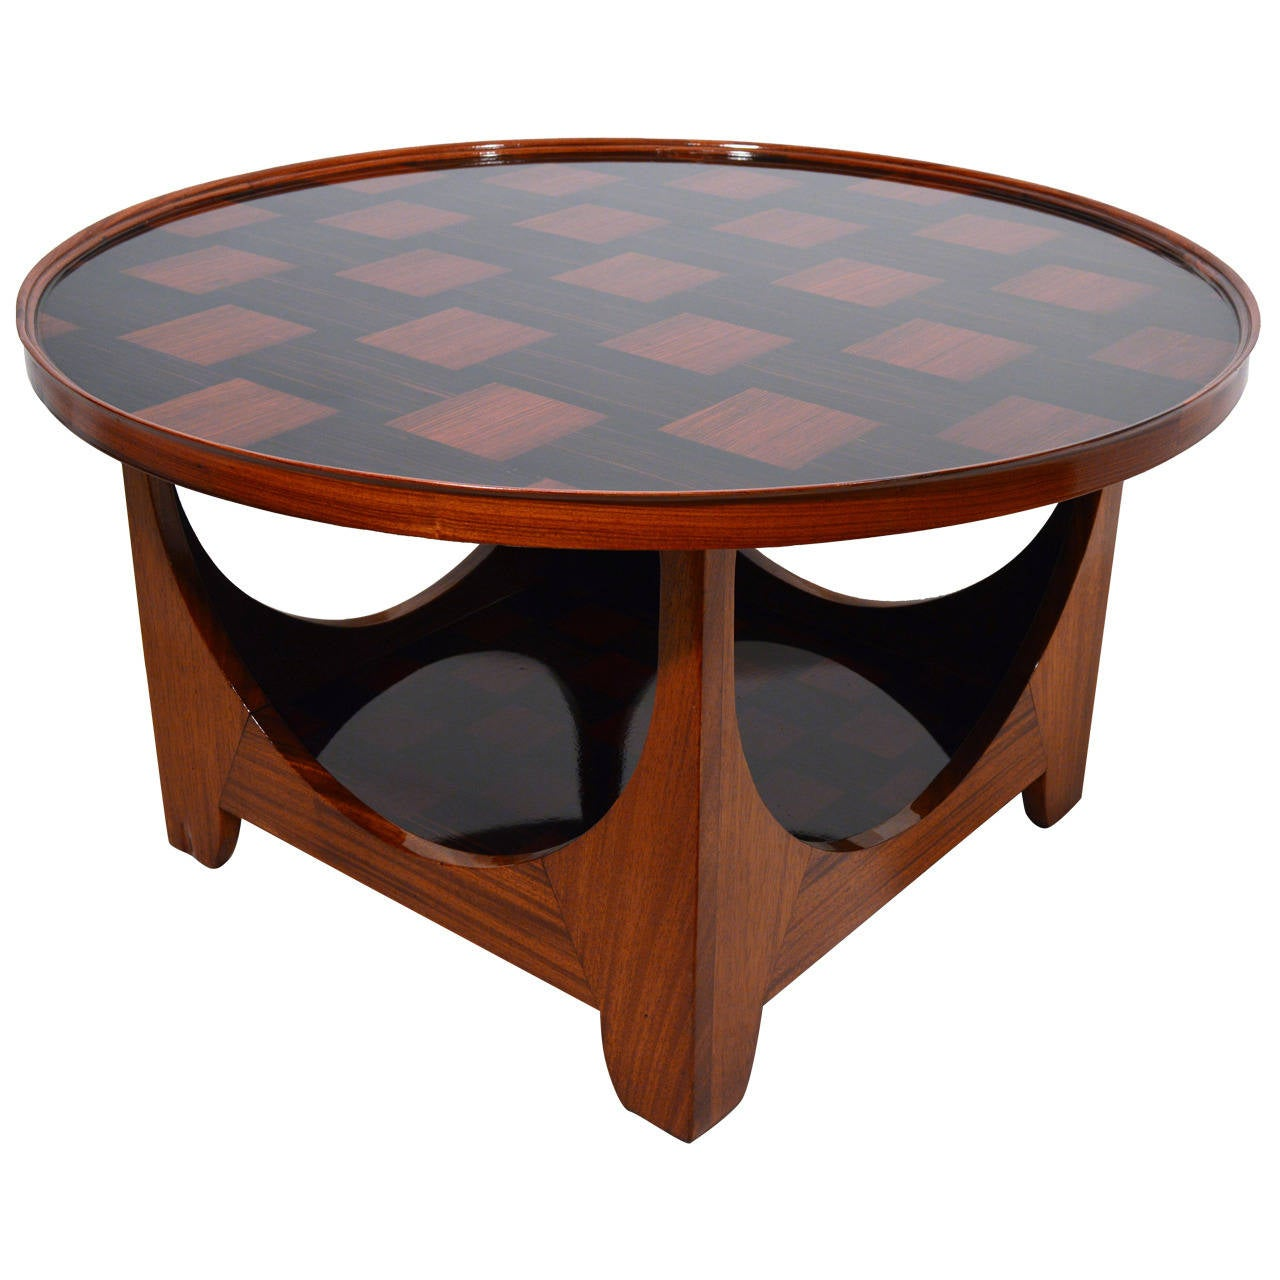 La japonaise coffee table by louis majorelle at 1stdibs for Table japonaise